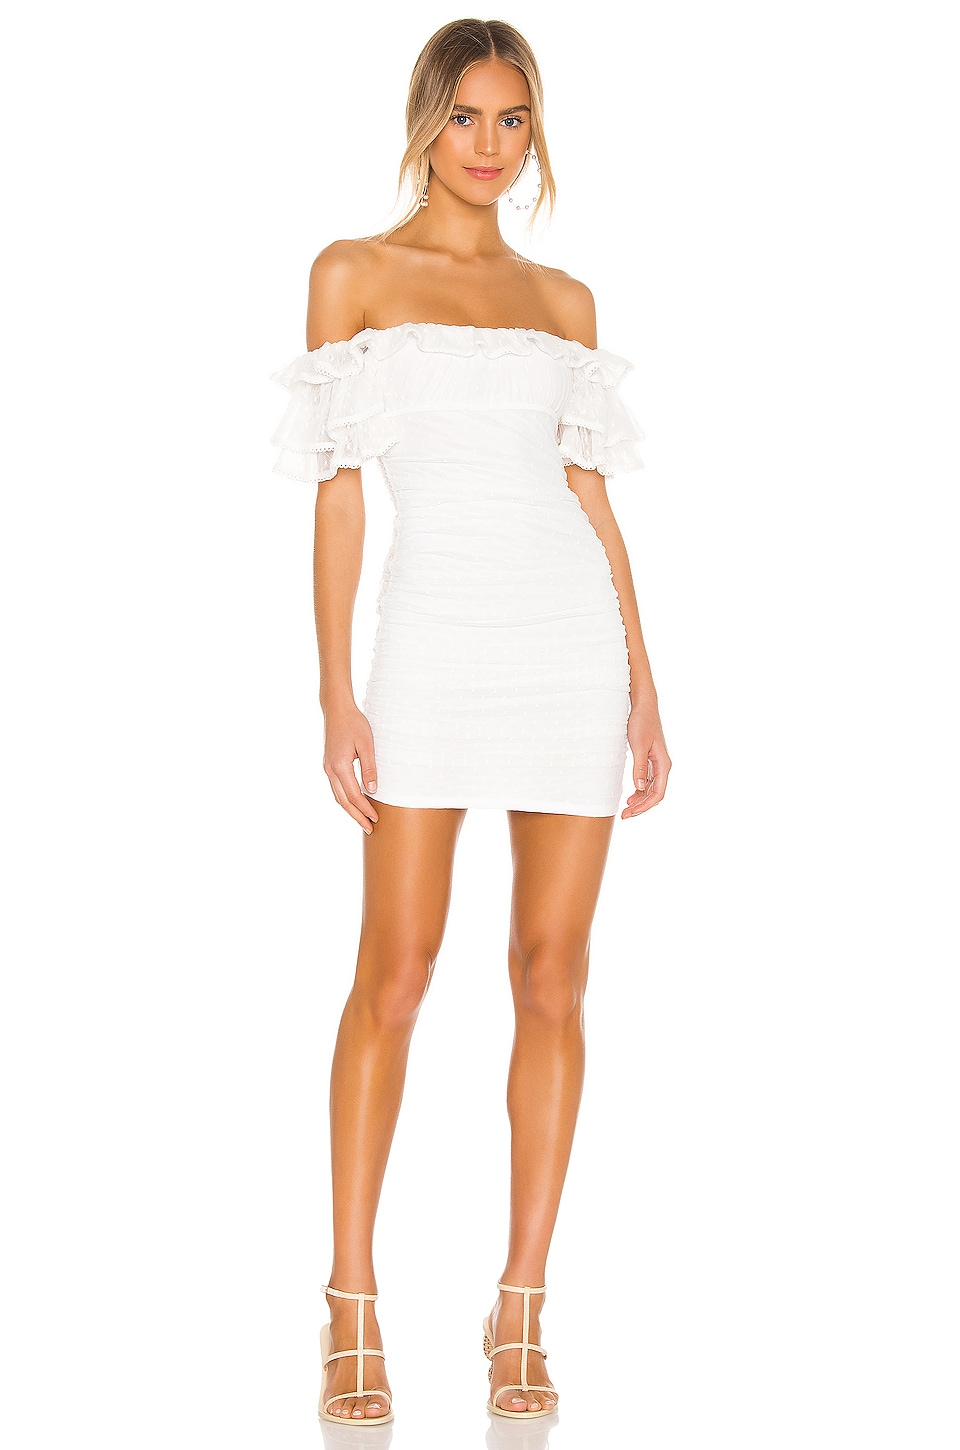 Eva Mini Dress             Camila Coelho                                                                                                       CA$ 300.48 11